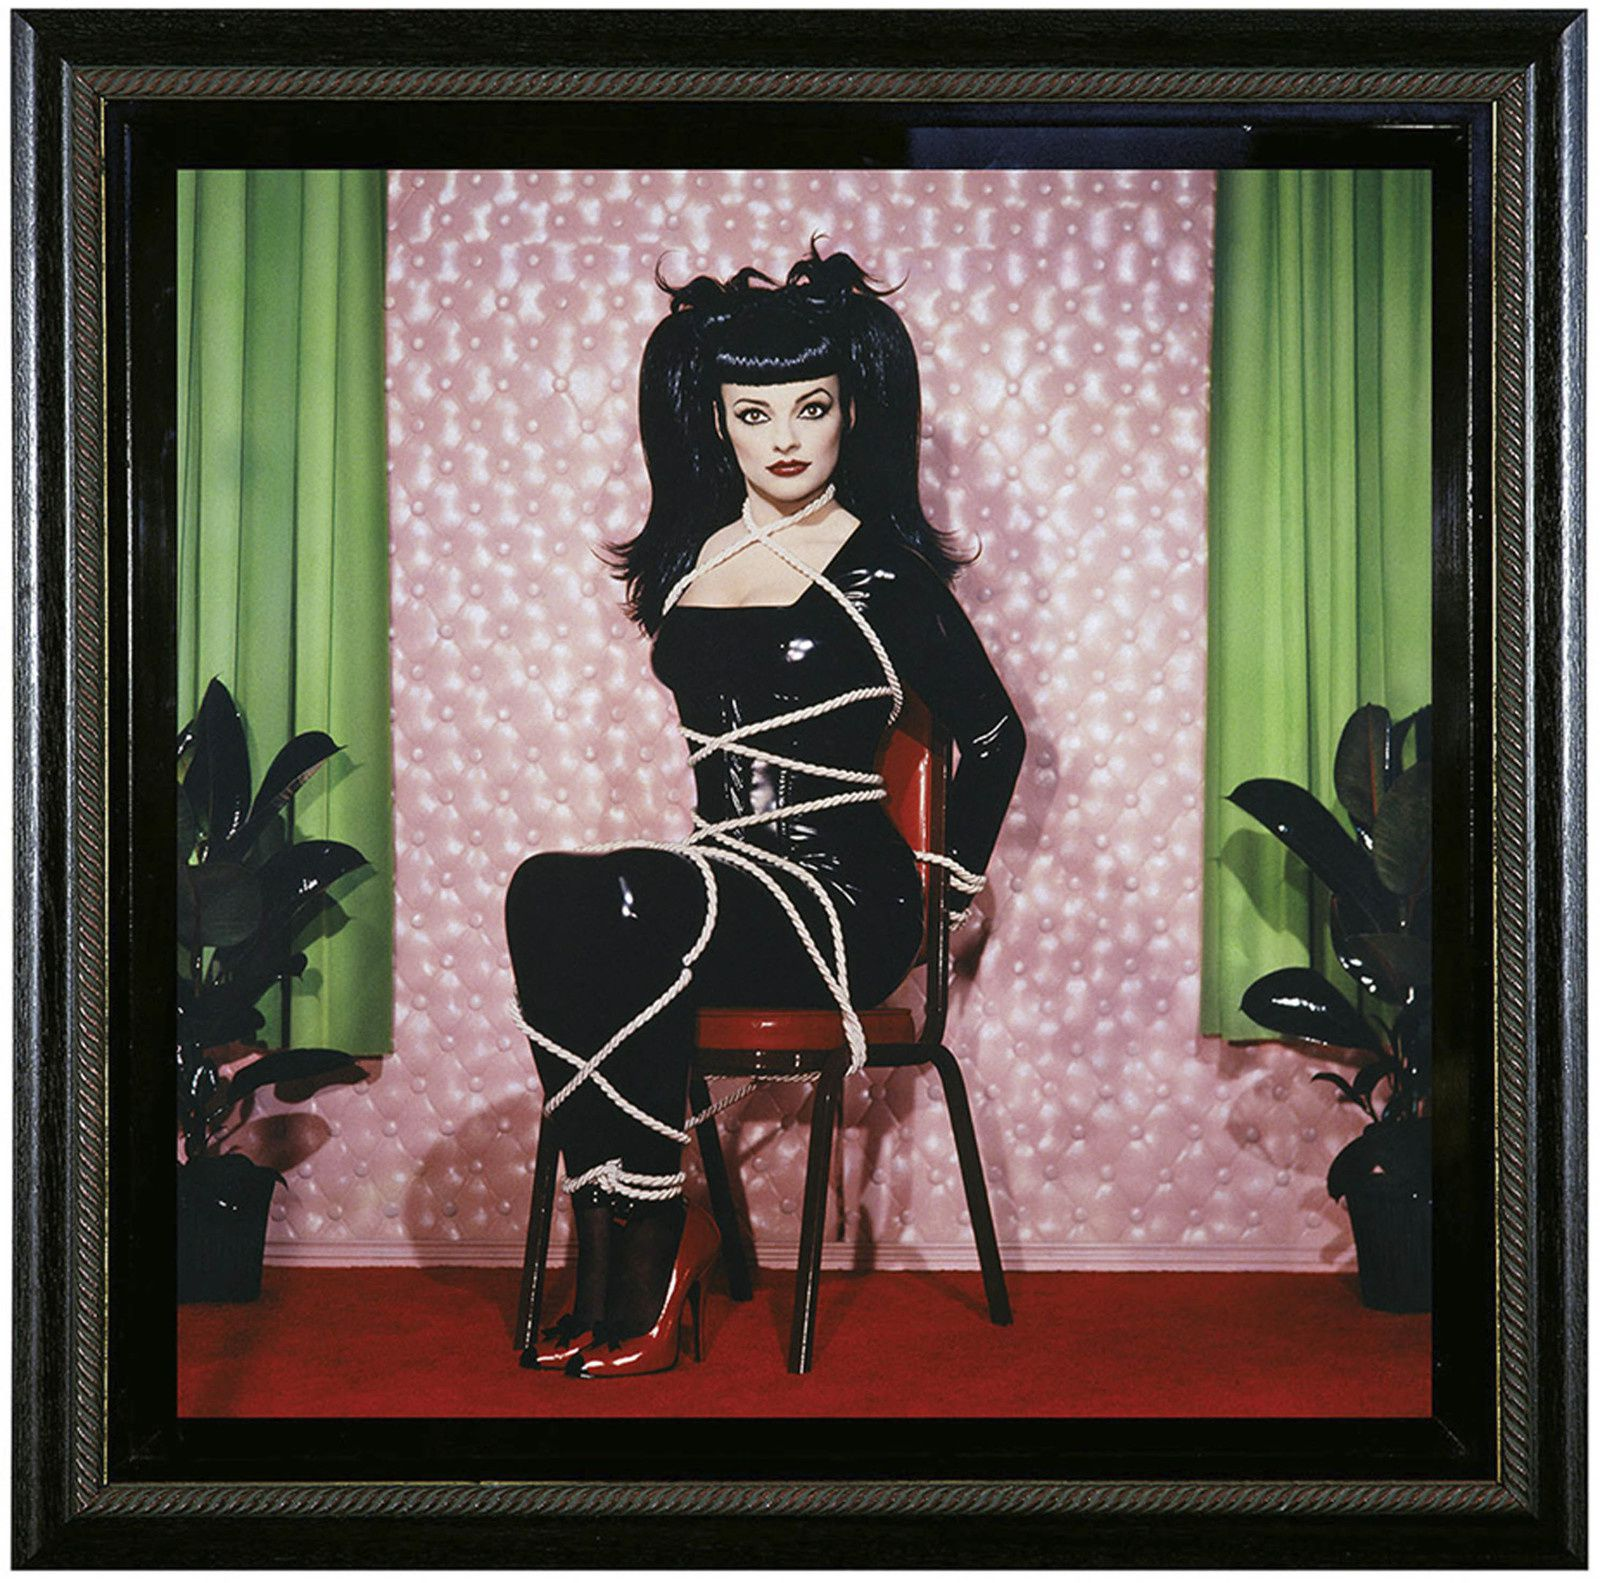 """Nina Hagen"" de PIERRE et GILLES - Courtesy Collection Noirmonartproduction, Paris"